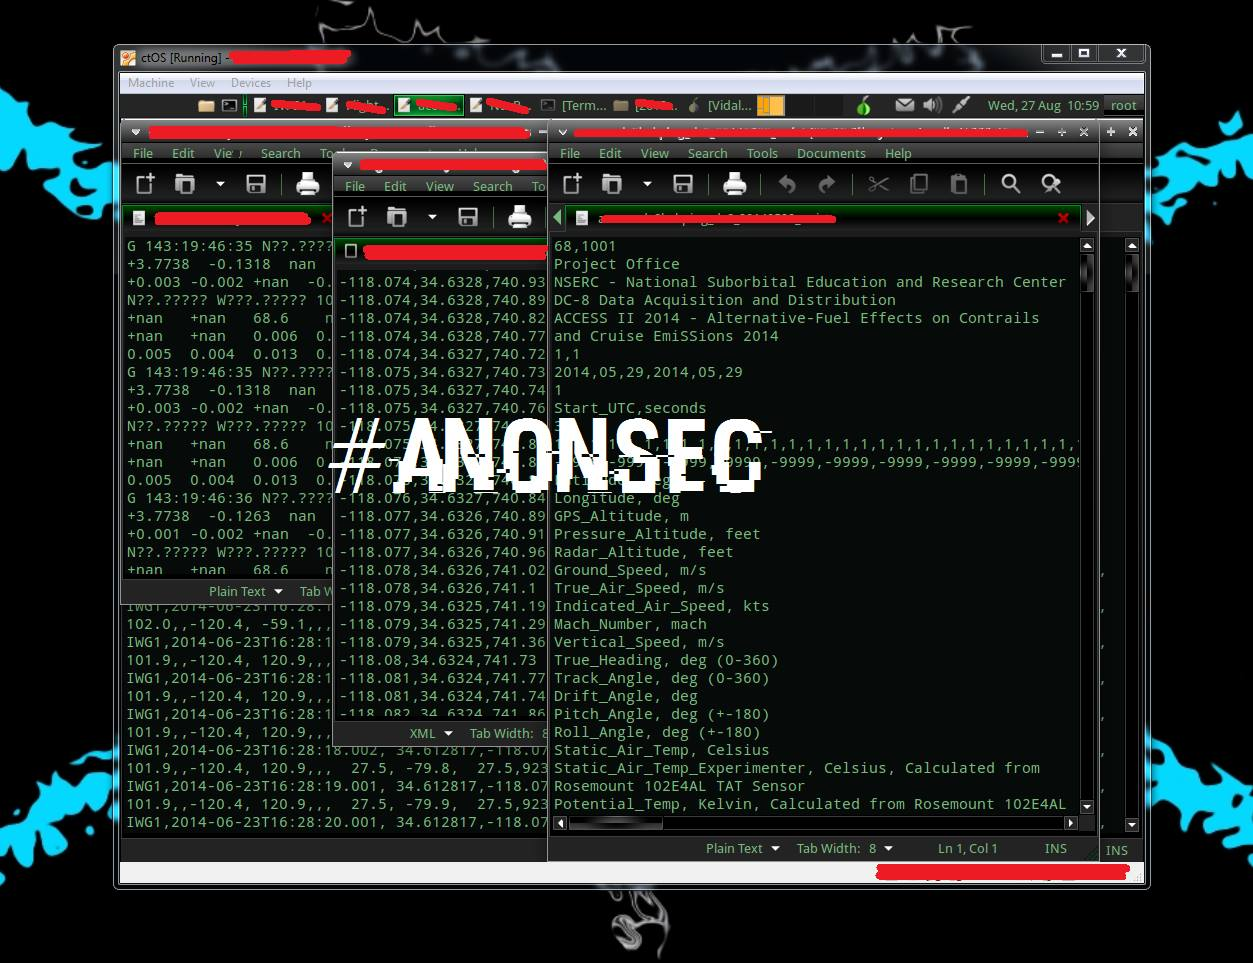 Anonsec Hackers Claim To Have Hacked Nasa Drones